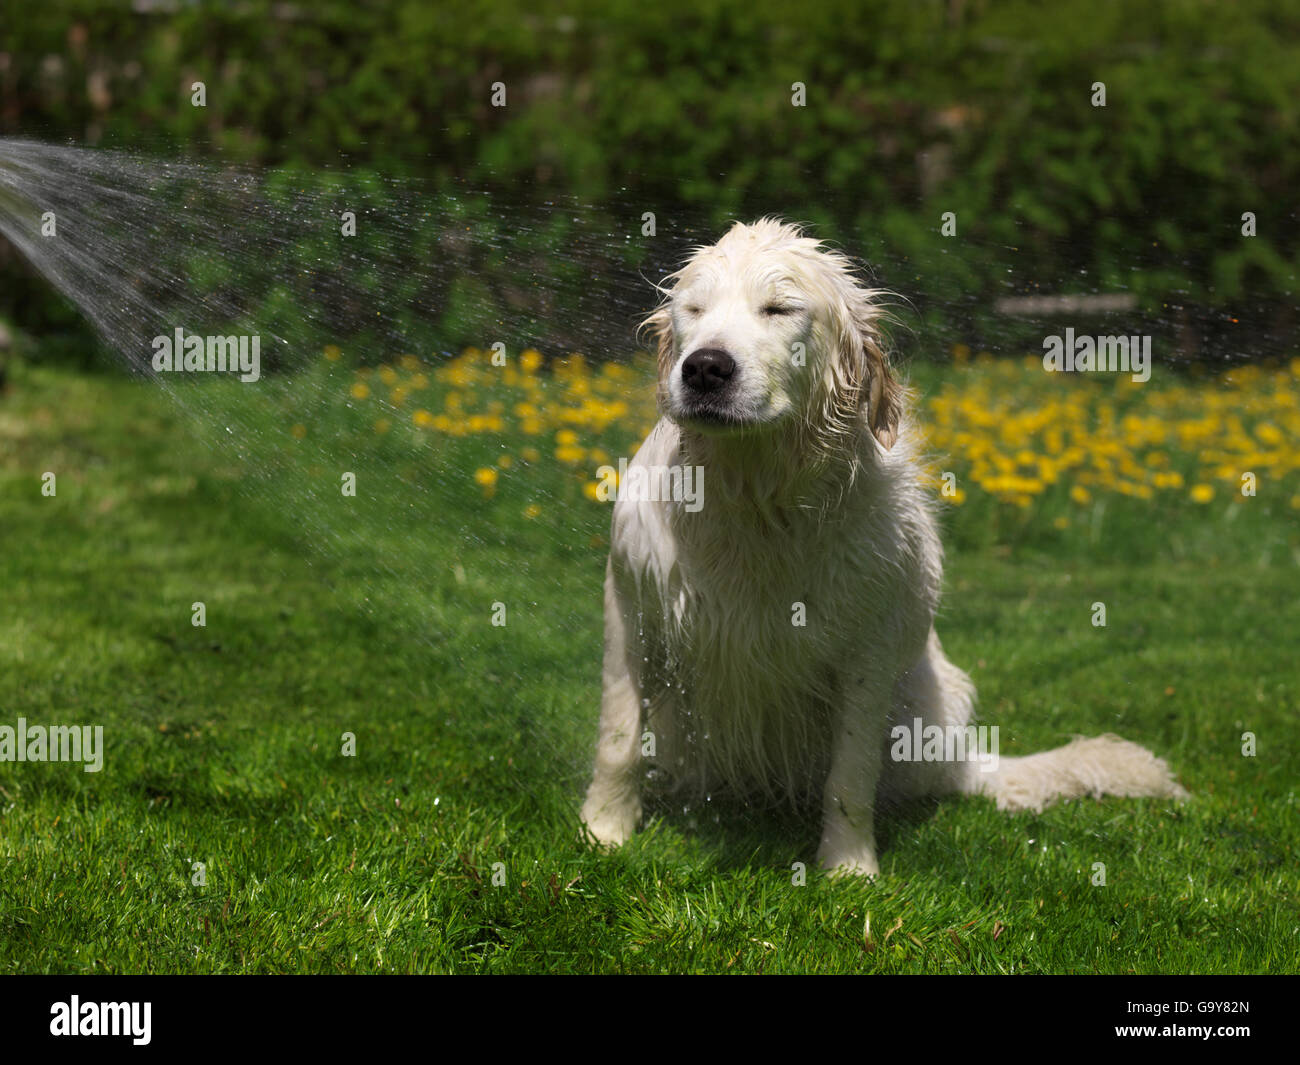 Golden retriever showers